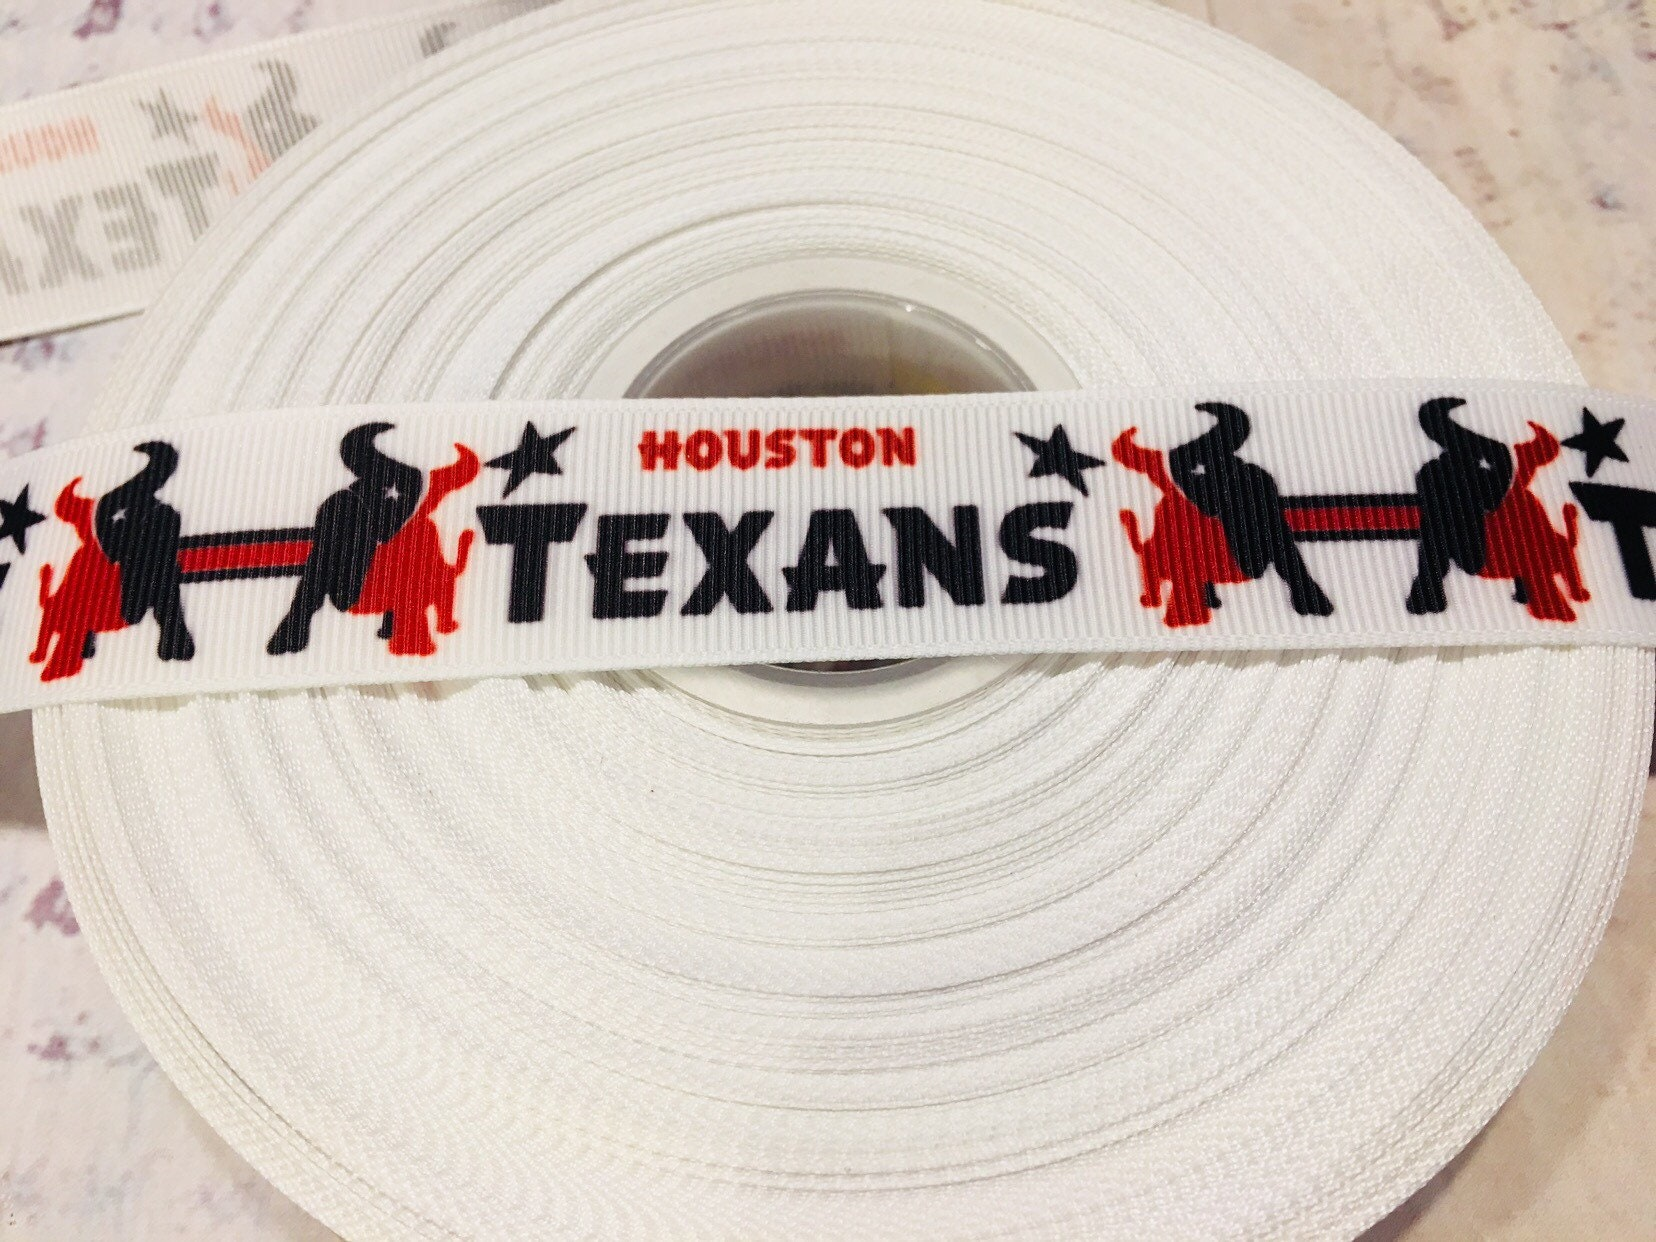 7//8 inch Houston Texans Grosgrain Ribbon-1 Yard